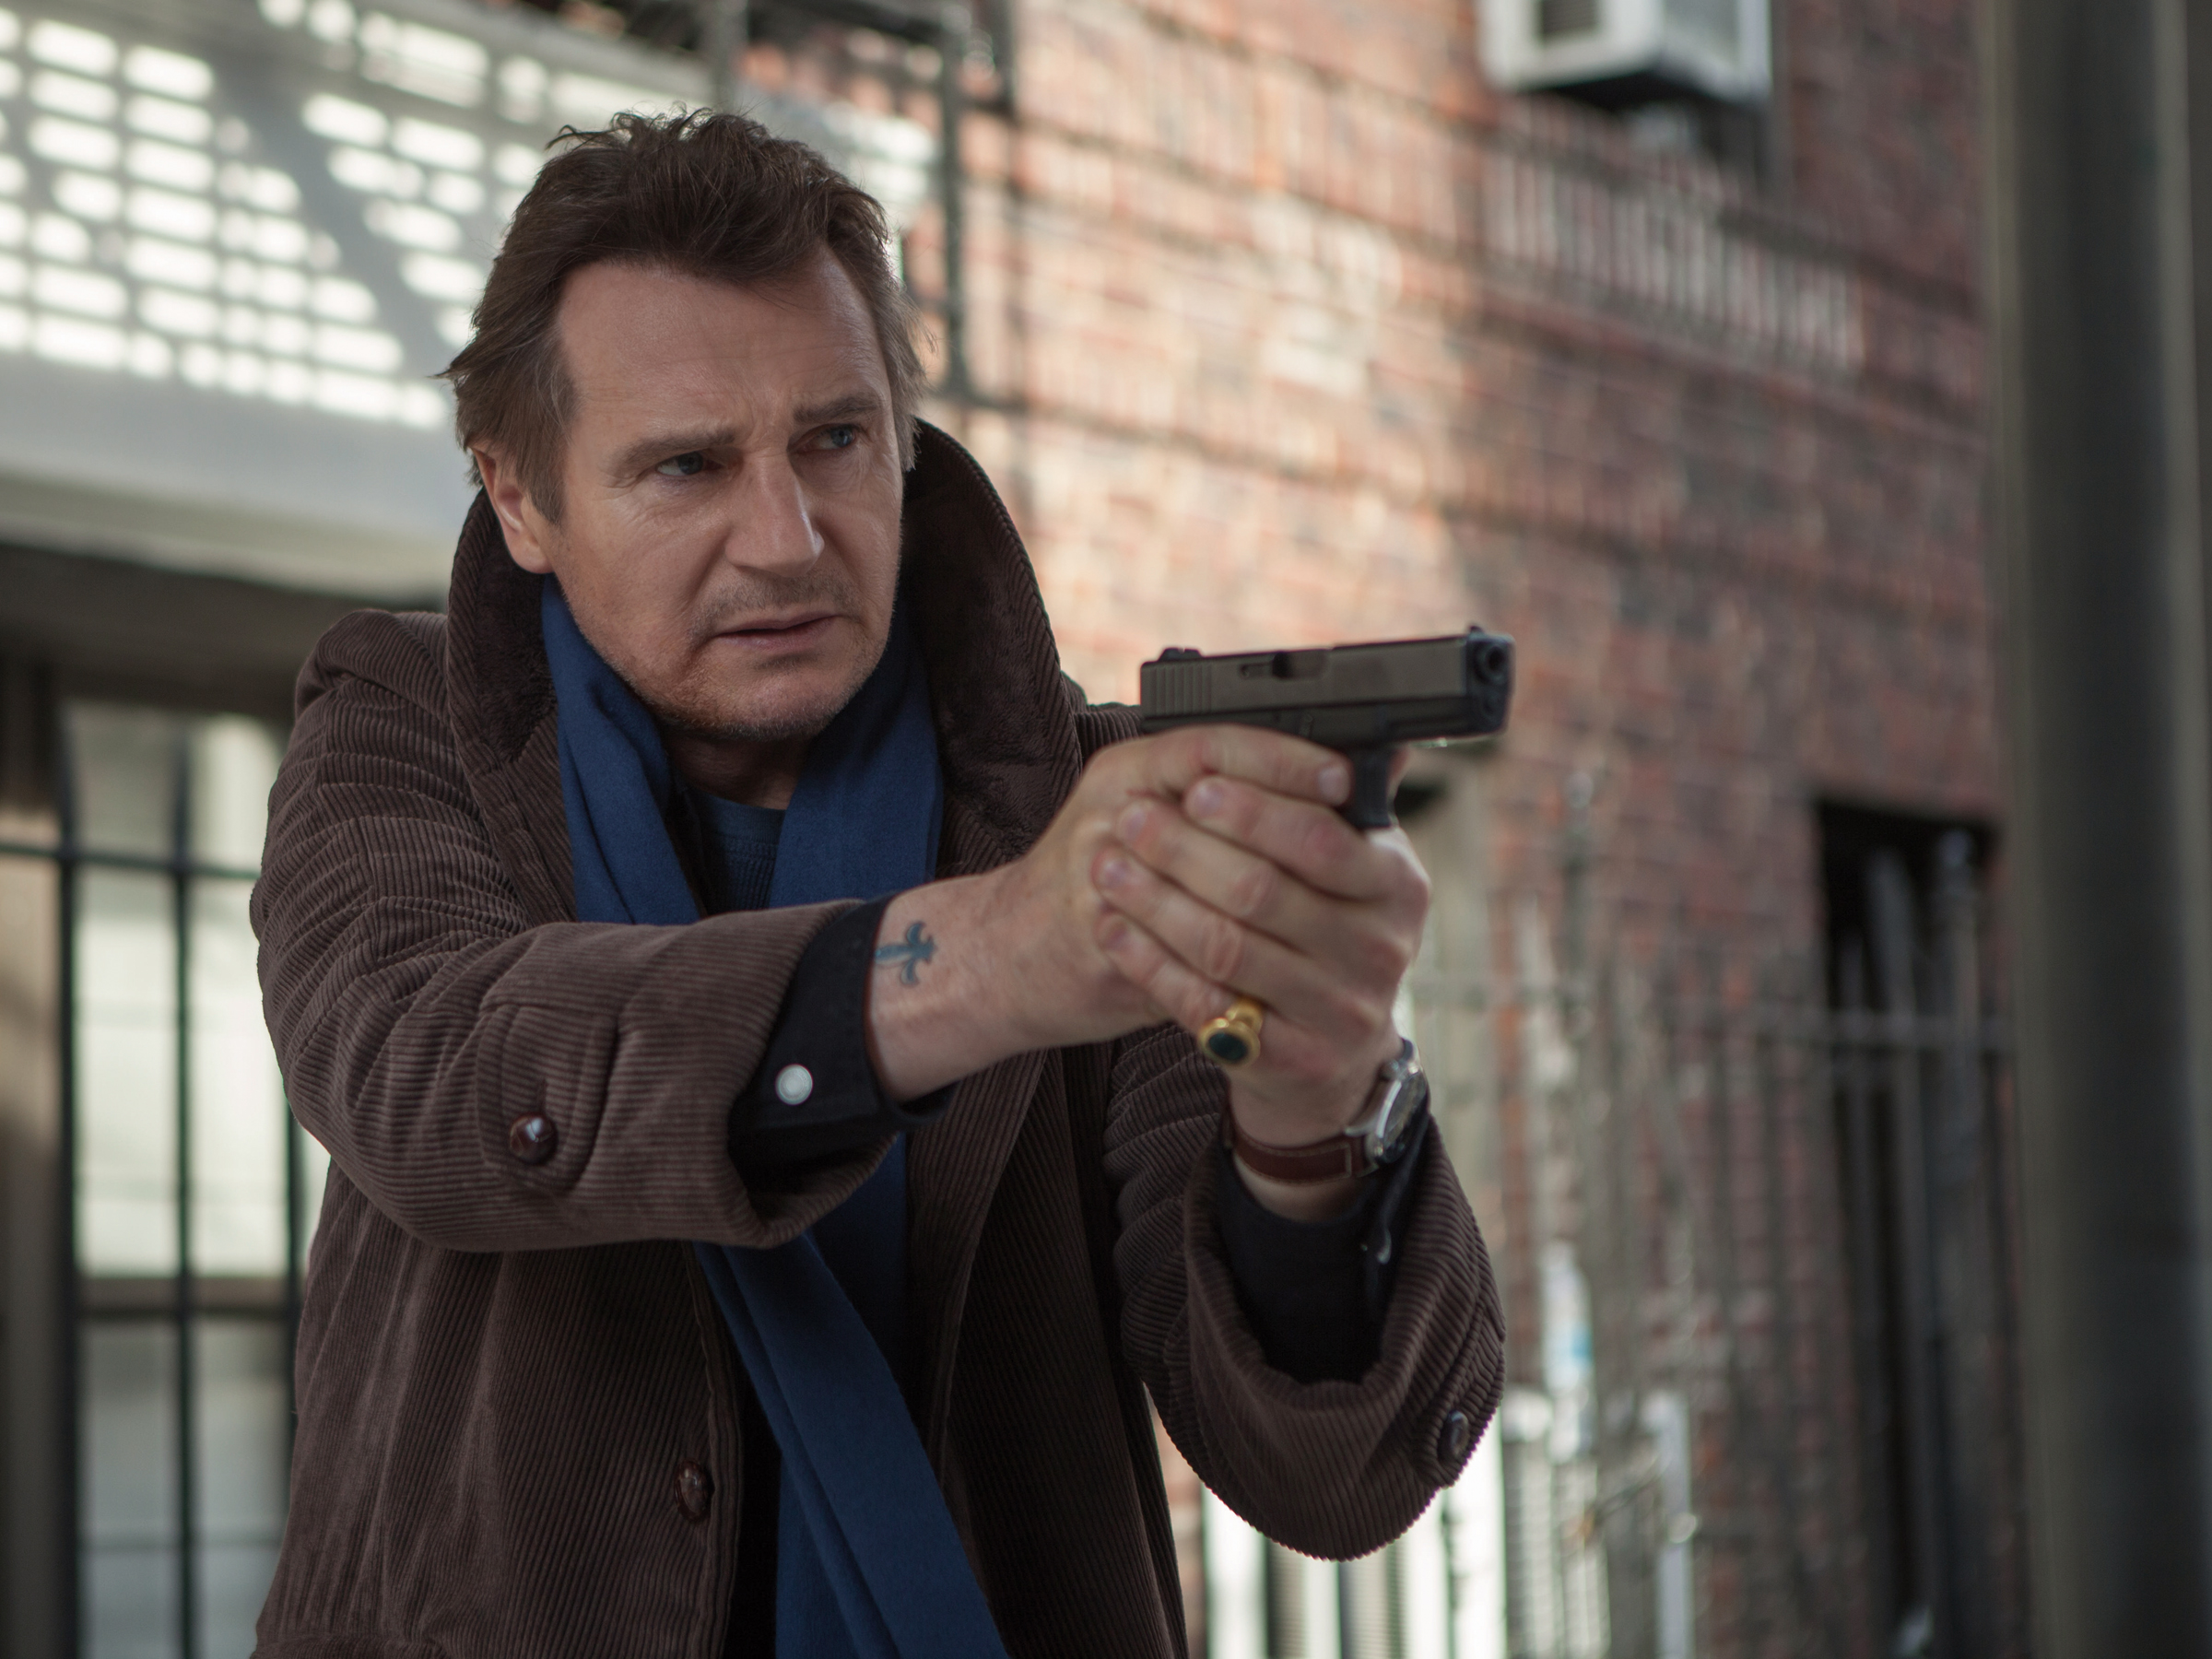 Liam Walk Among the Tombstones